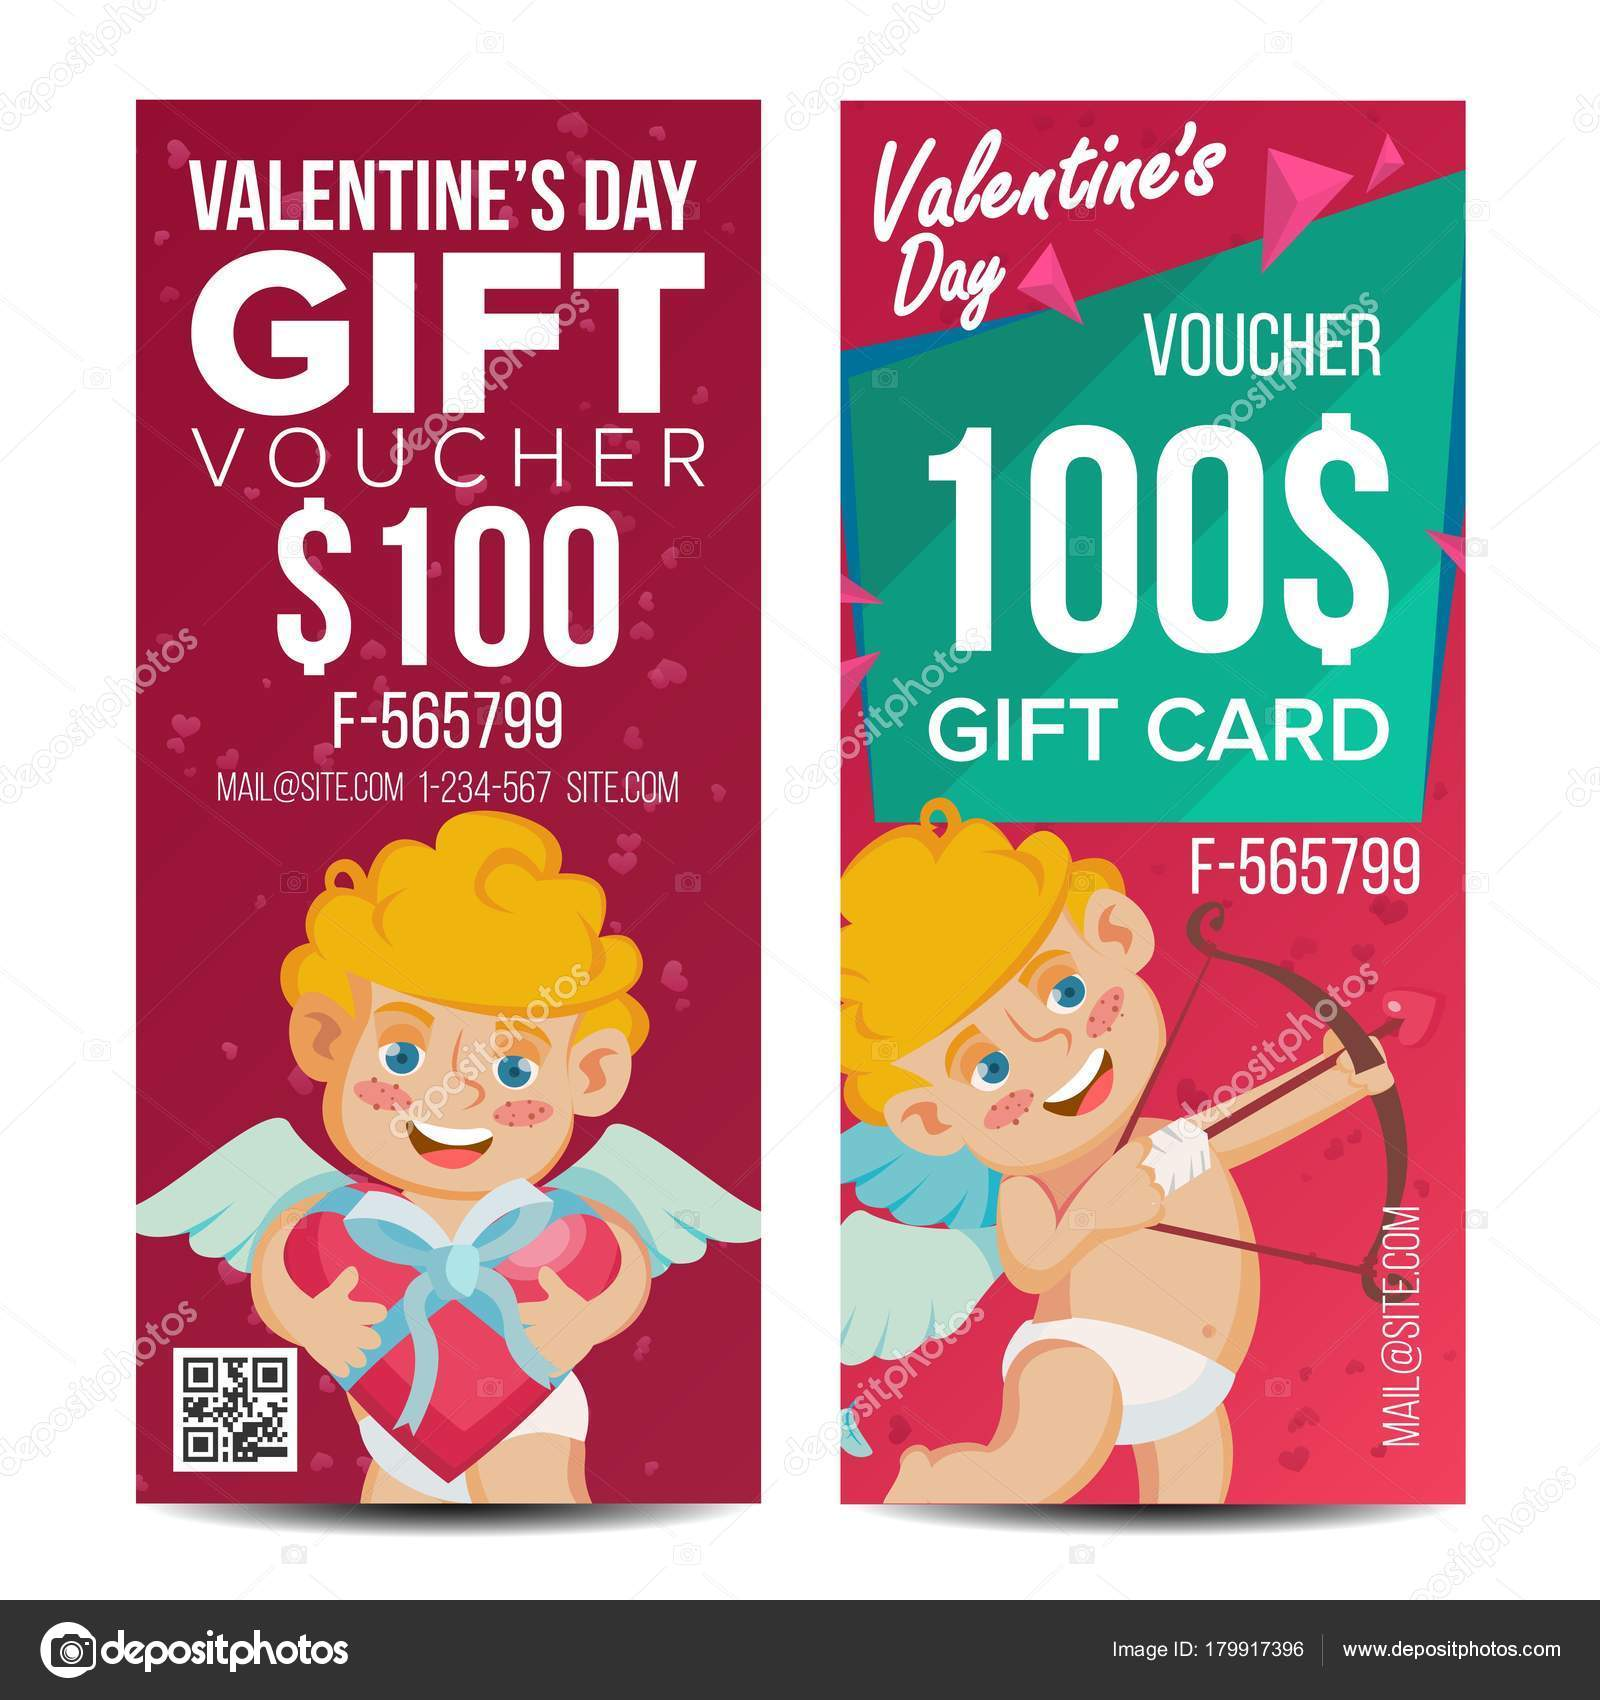 Valentine s day voucher template vector vertical free card valentine s day voucher template vector vertical free card february 14 valentine cupid 1betcityfo Image collections